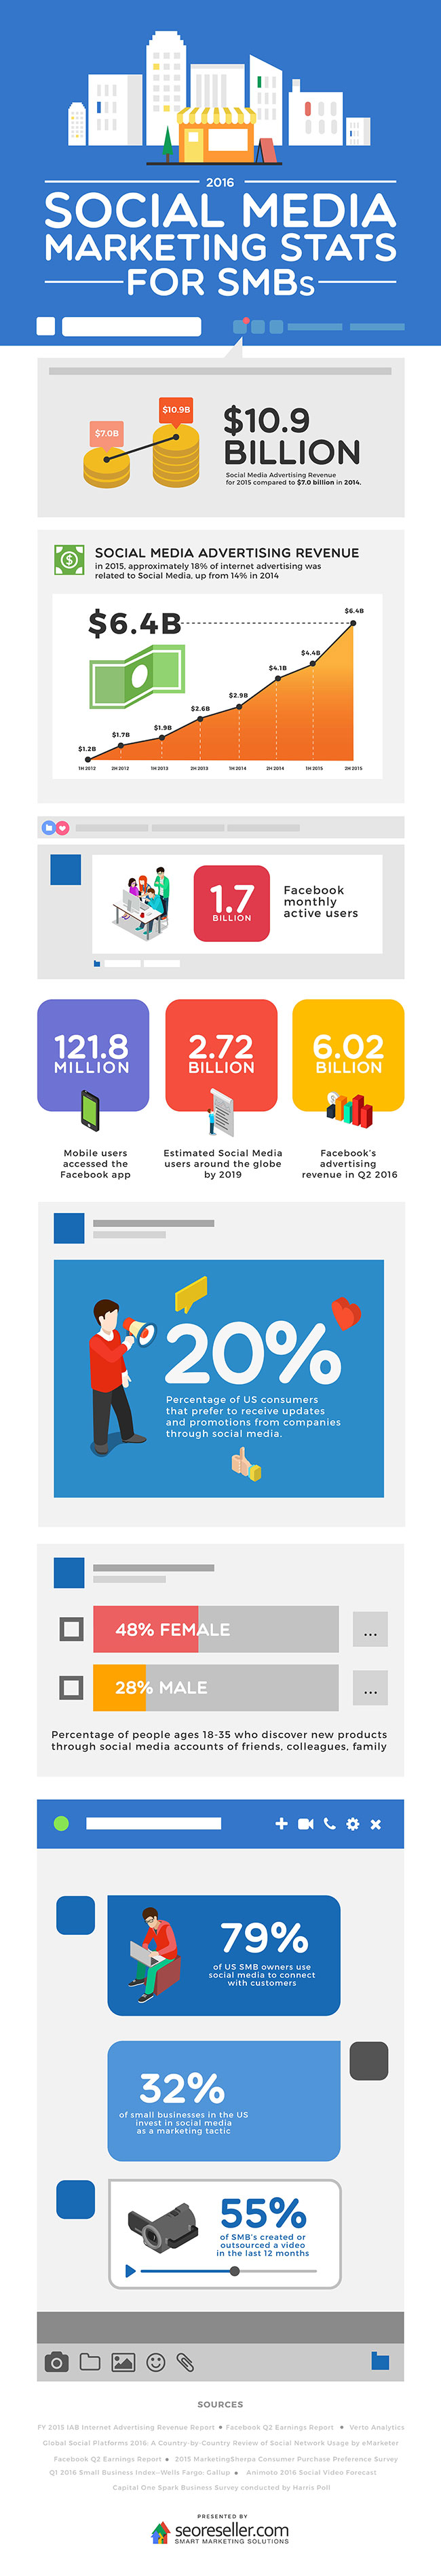 2016 Social Media Marketing Stats for SMBs [Infographic]